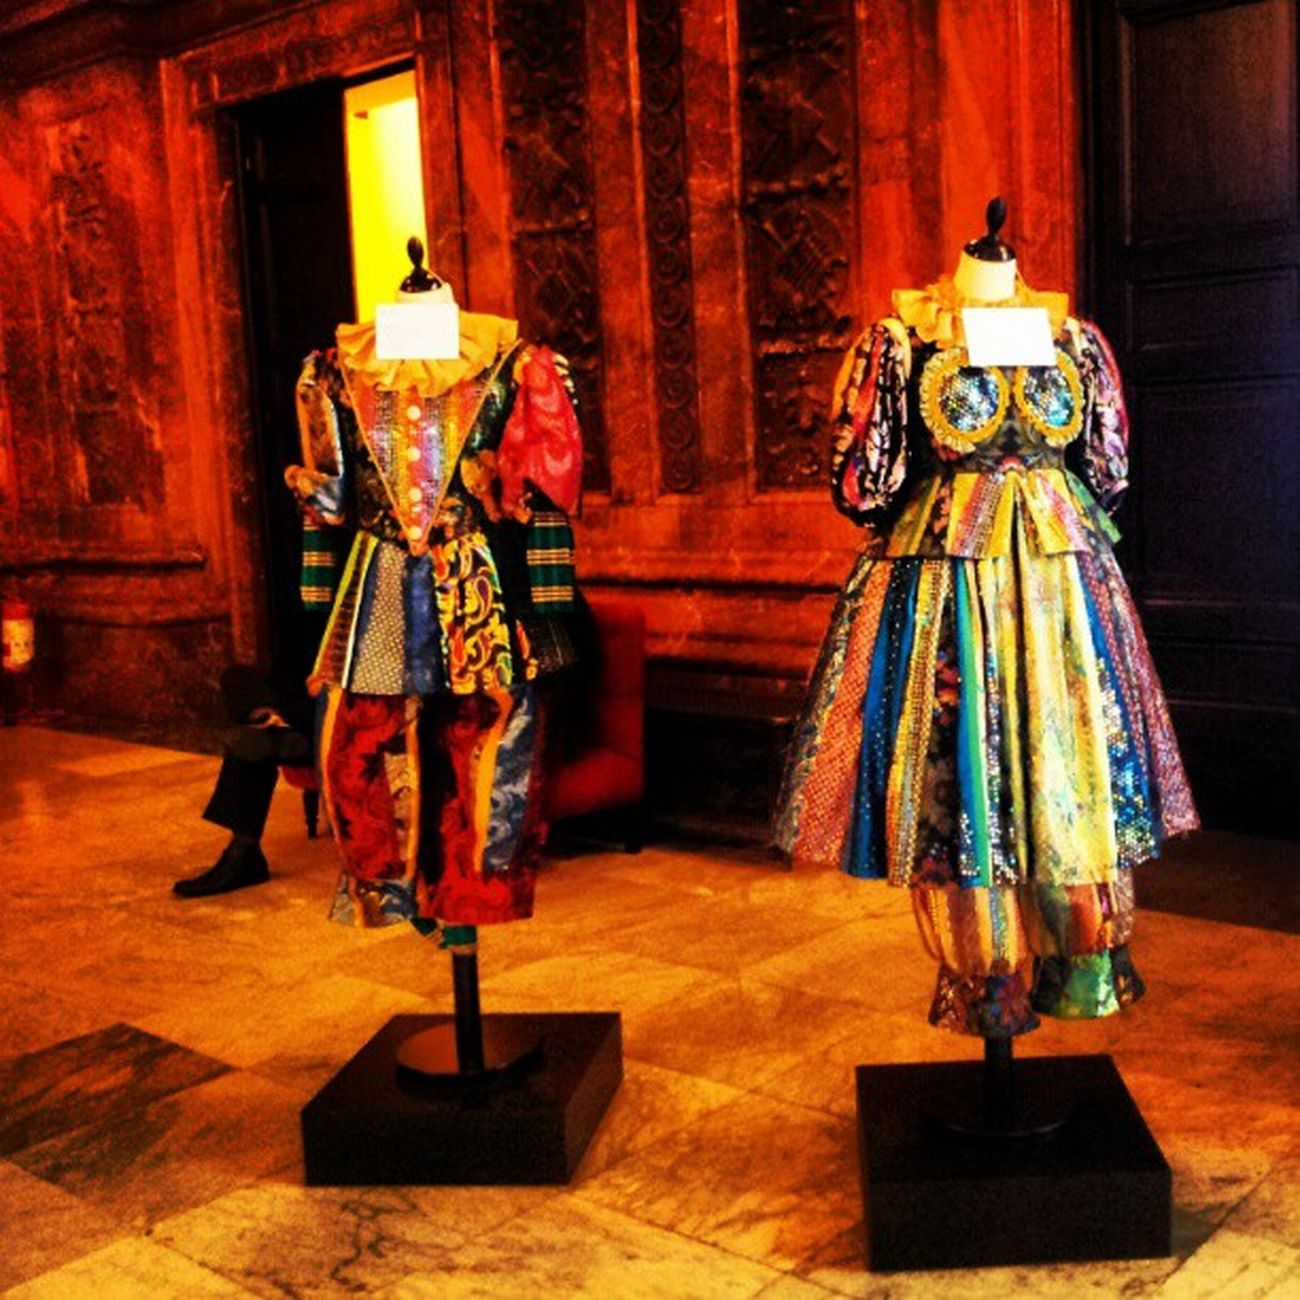 Teatromassimo Teatro Dress Antique Old Photoftheday Palermo Picoftheday Colours Android Androidphoto Igaddict Igerspalermo Igerssicilia